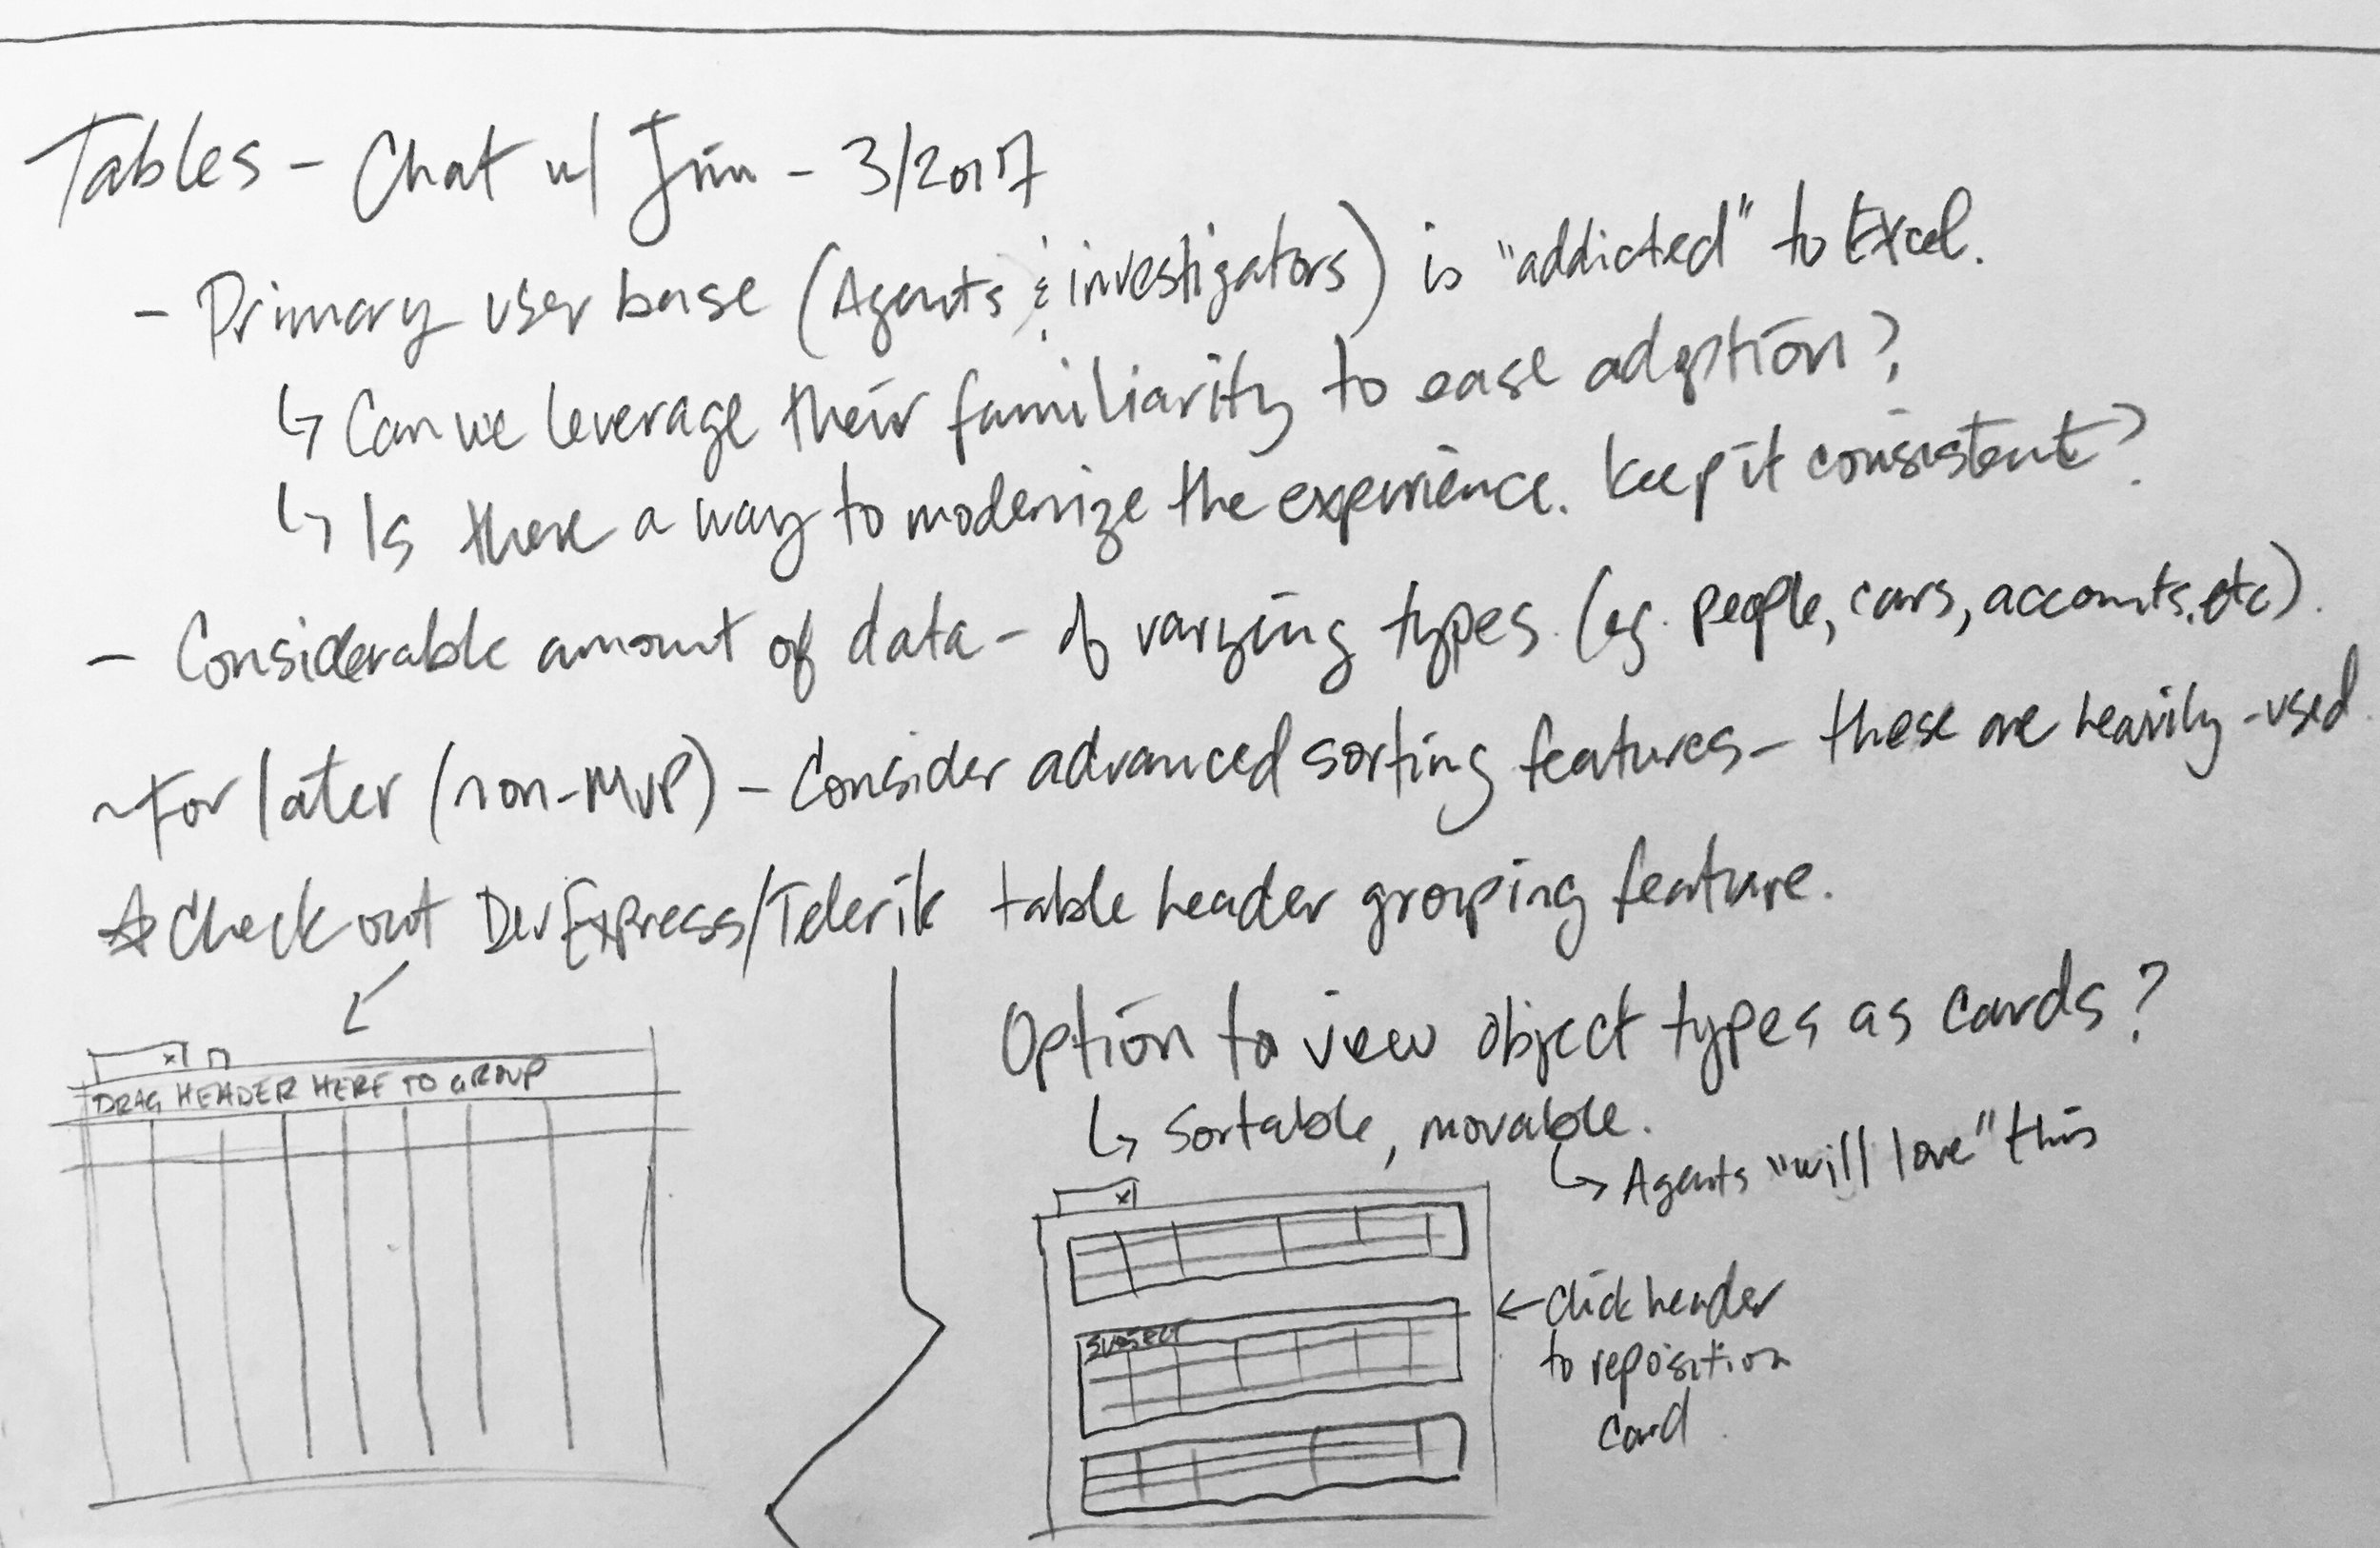 Notes from user interviews on building a table viewer